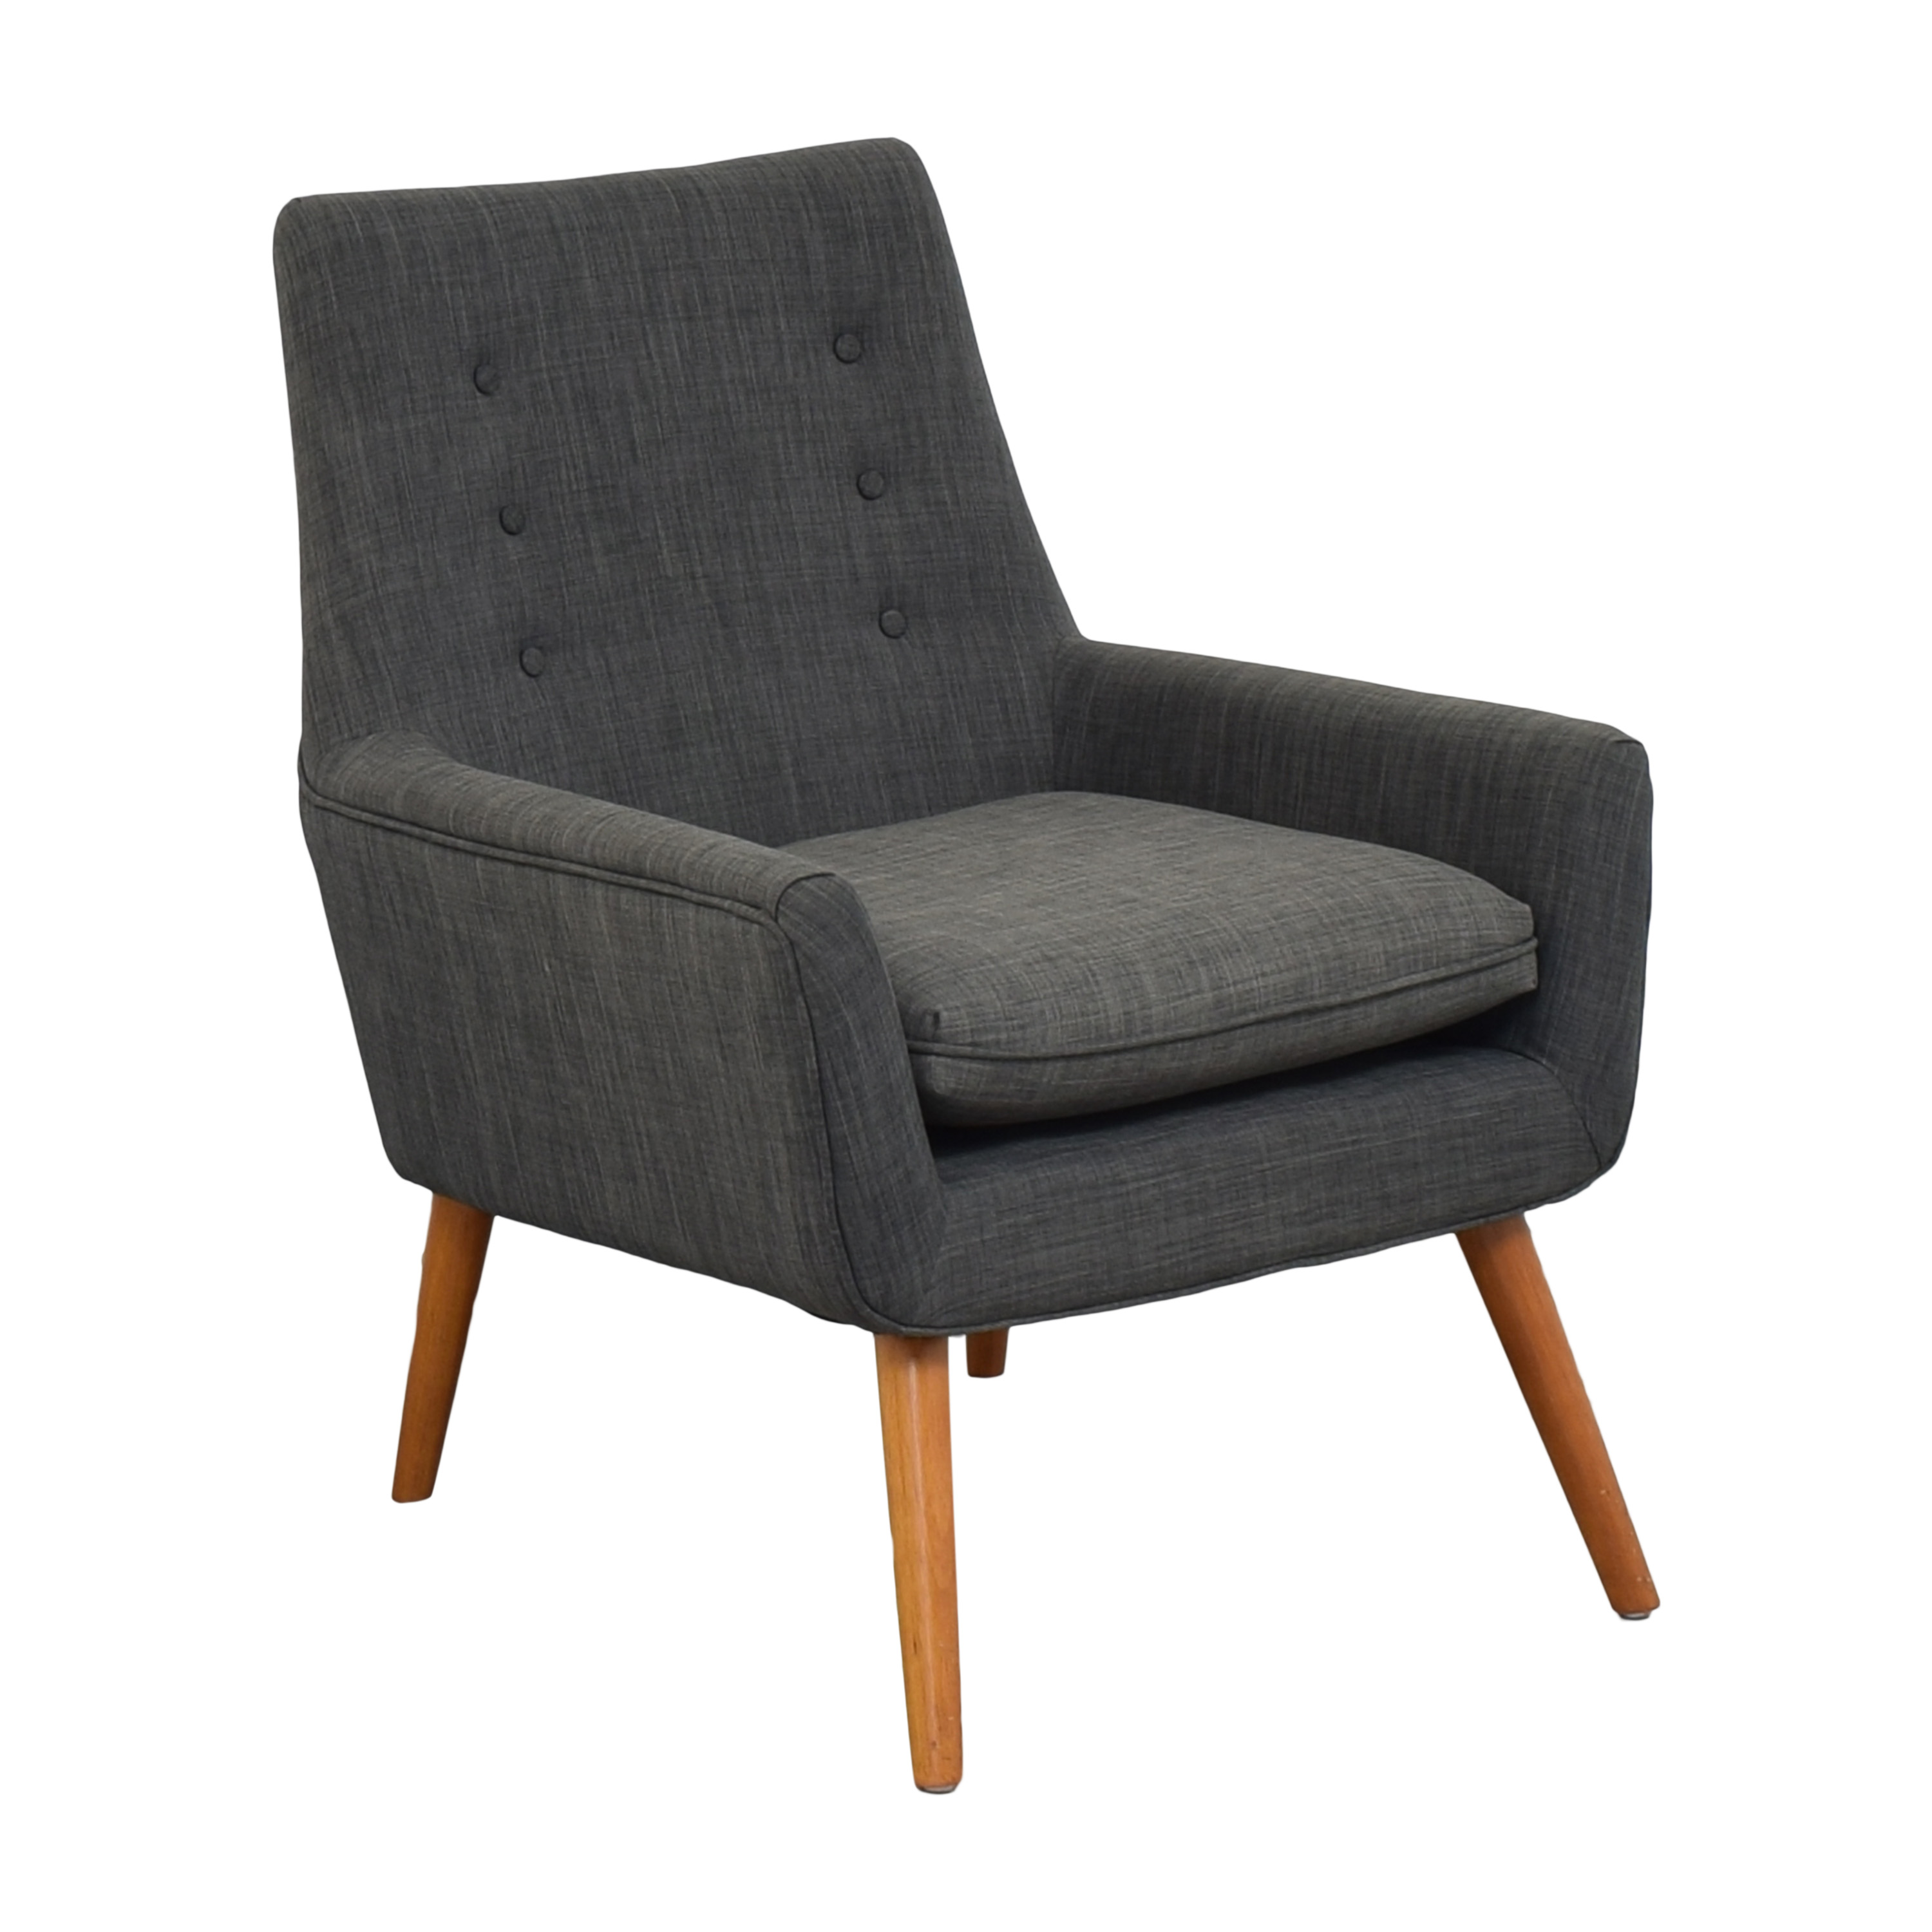 buy Adesso Modern Accent Chair  Adesso Chairs